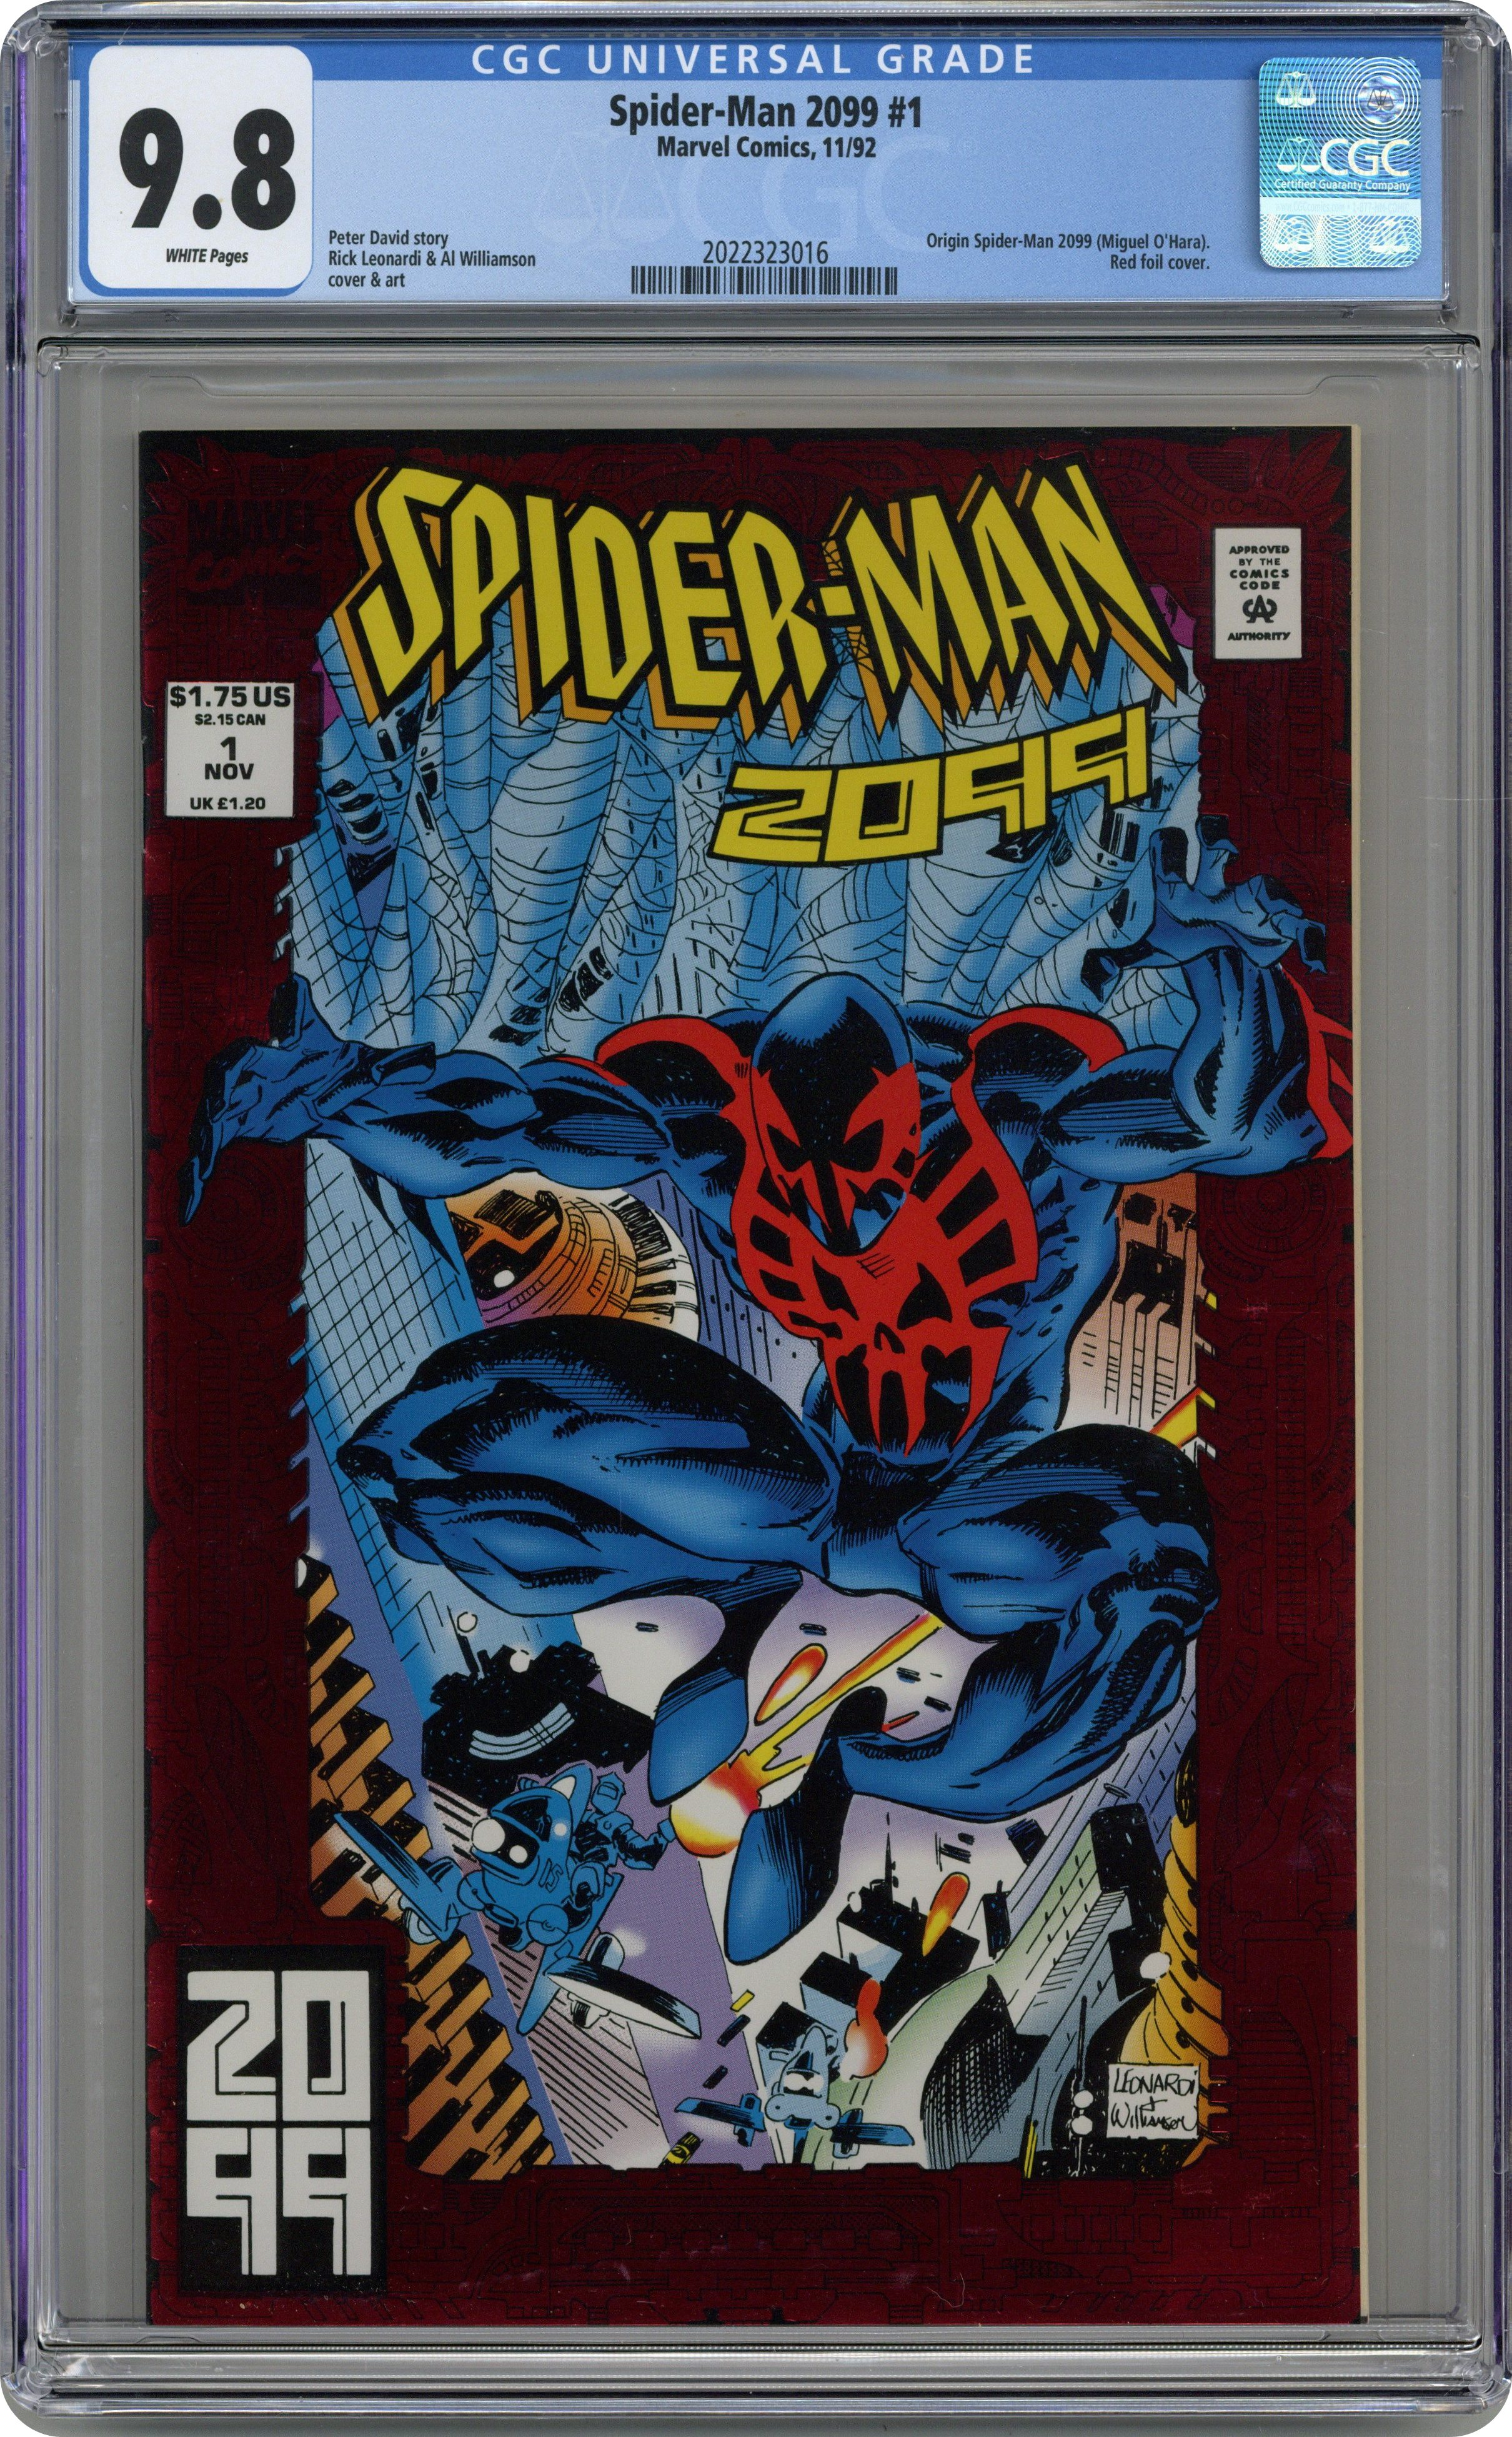 SPIDER-MAN #1 BAGLEY CLASSIC 1:25 INCENTIVE VARIANT COVER